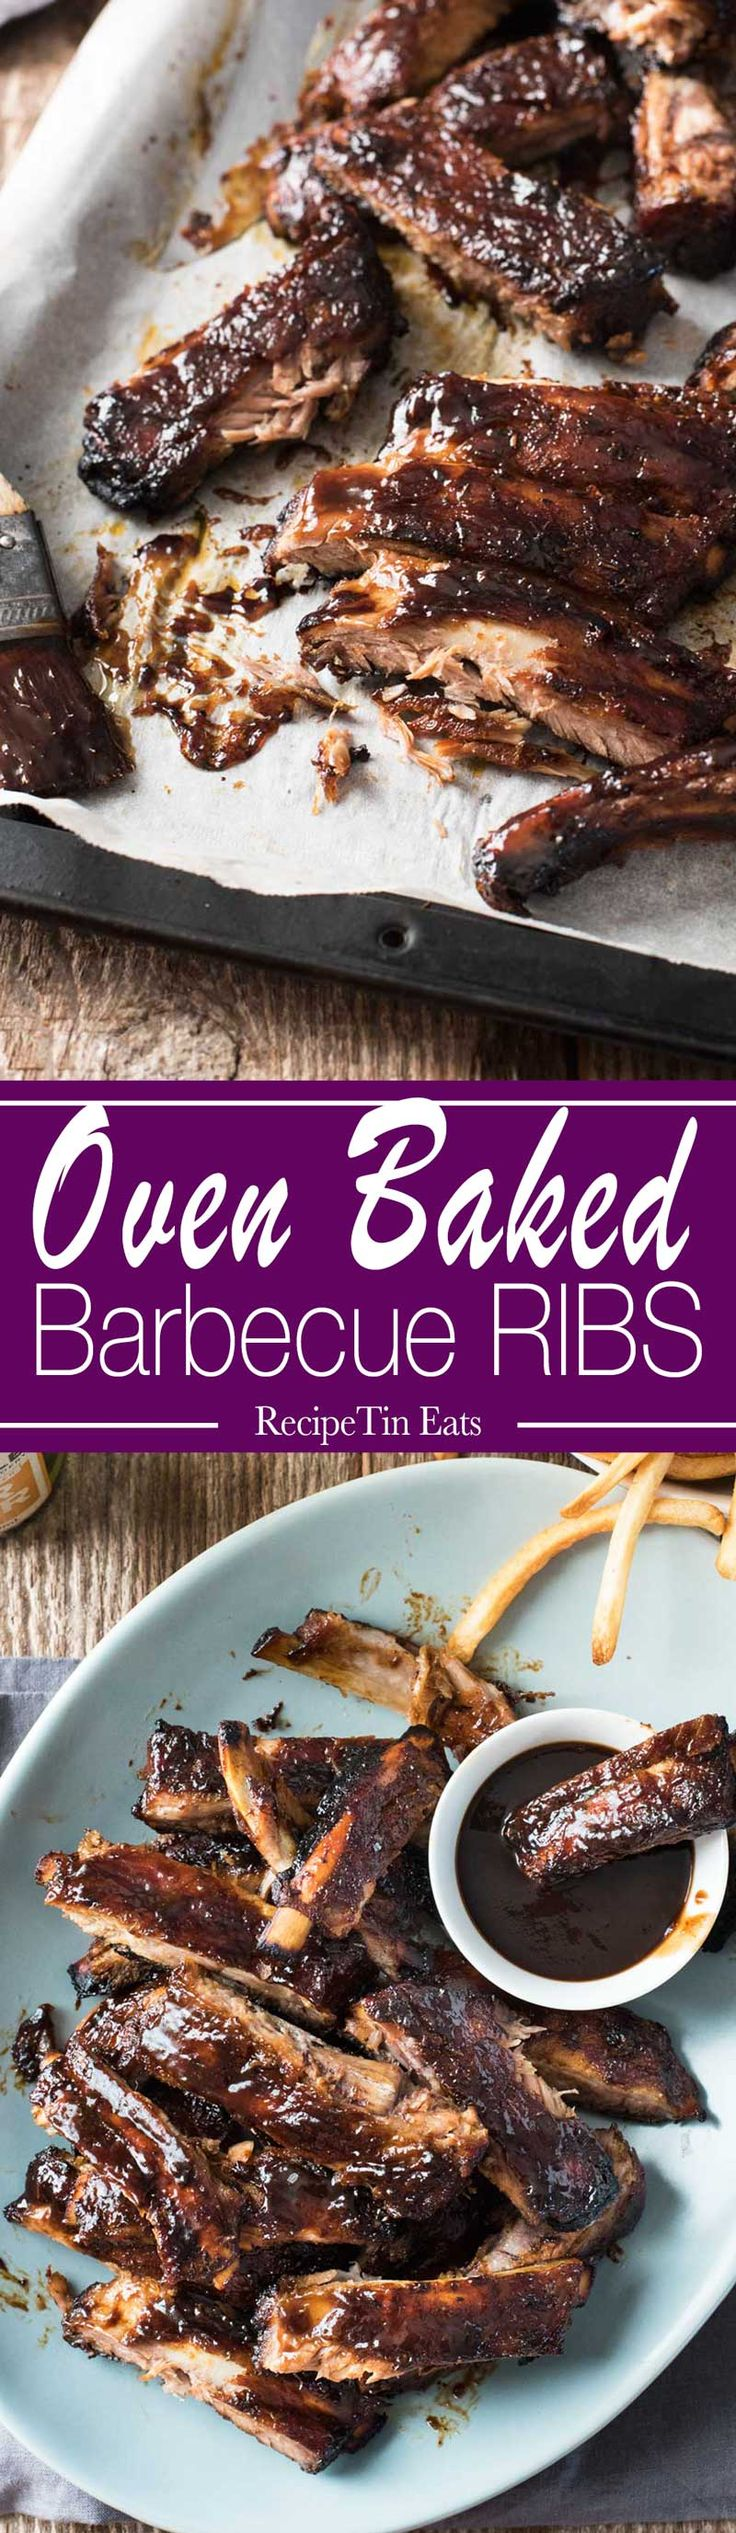 """In the words of my (gourmet) friend: """"These ribs are spectacular. Best homemade BBQ sauce I've ever tried!"""""""